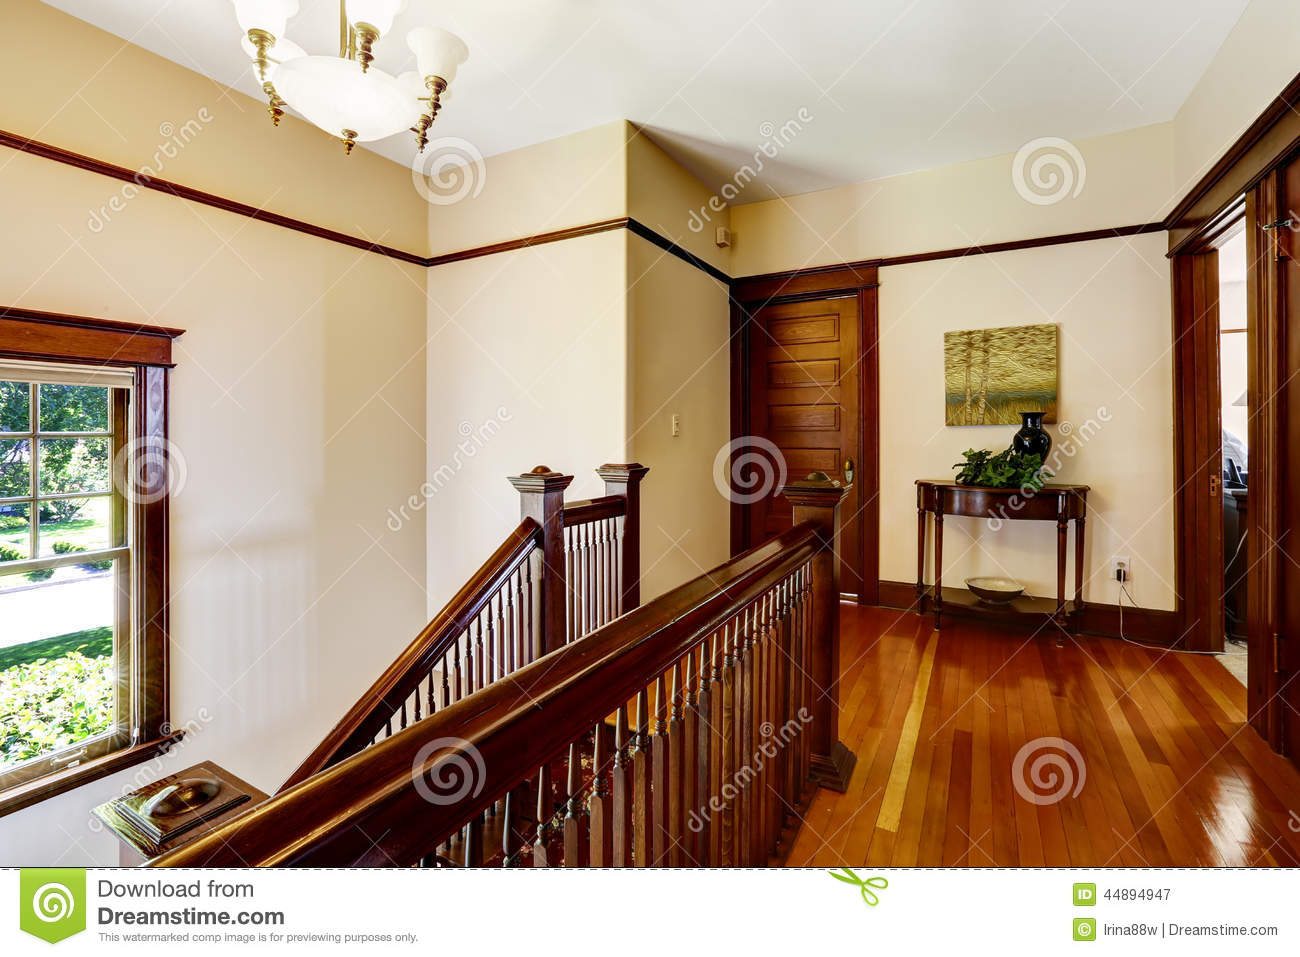 Upstairs hallway with hardwood floor and staircase stock for Hardwood floors upstairs